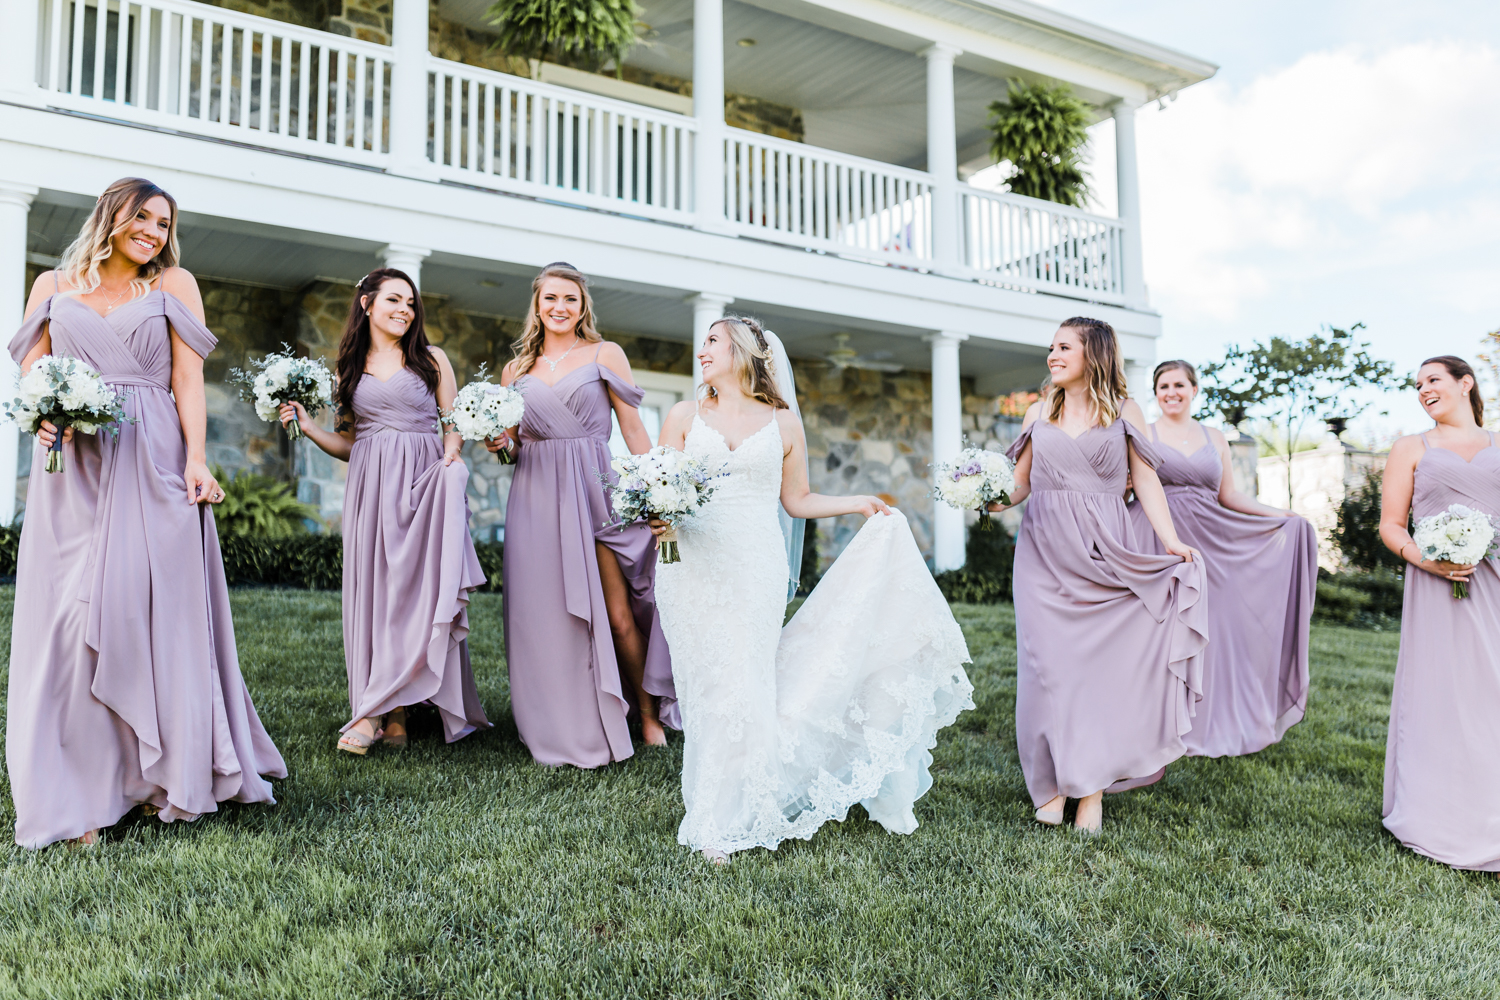 Bride walking and laughing with bridesmaids - Maryland